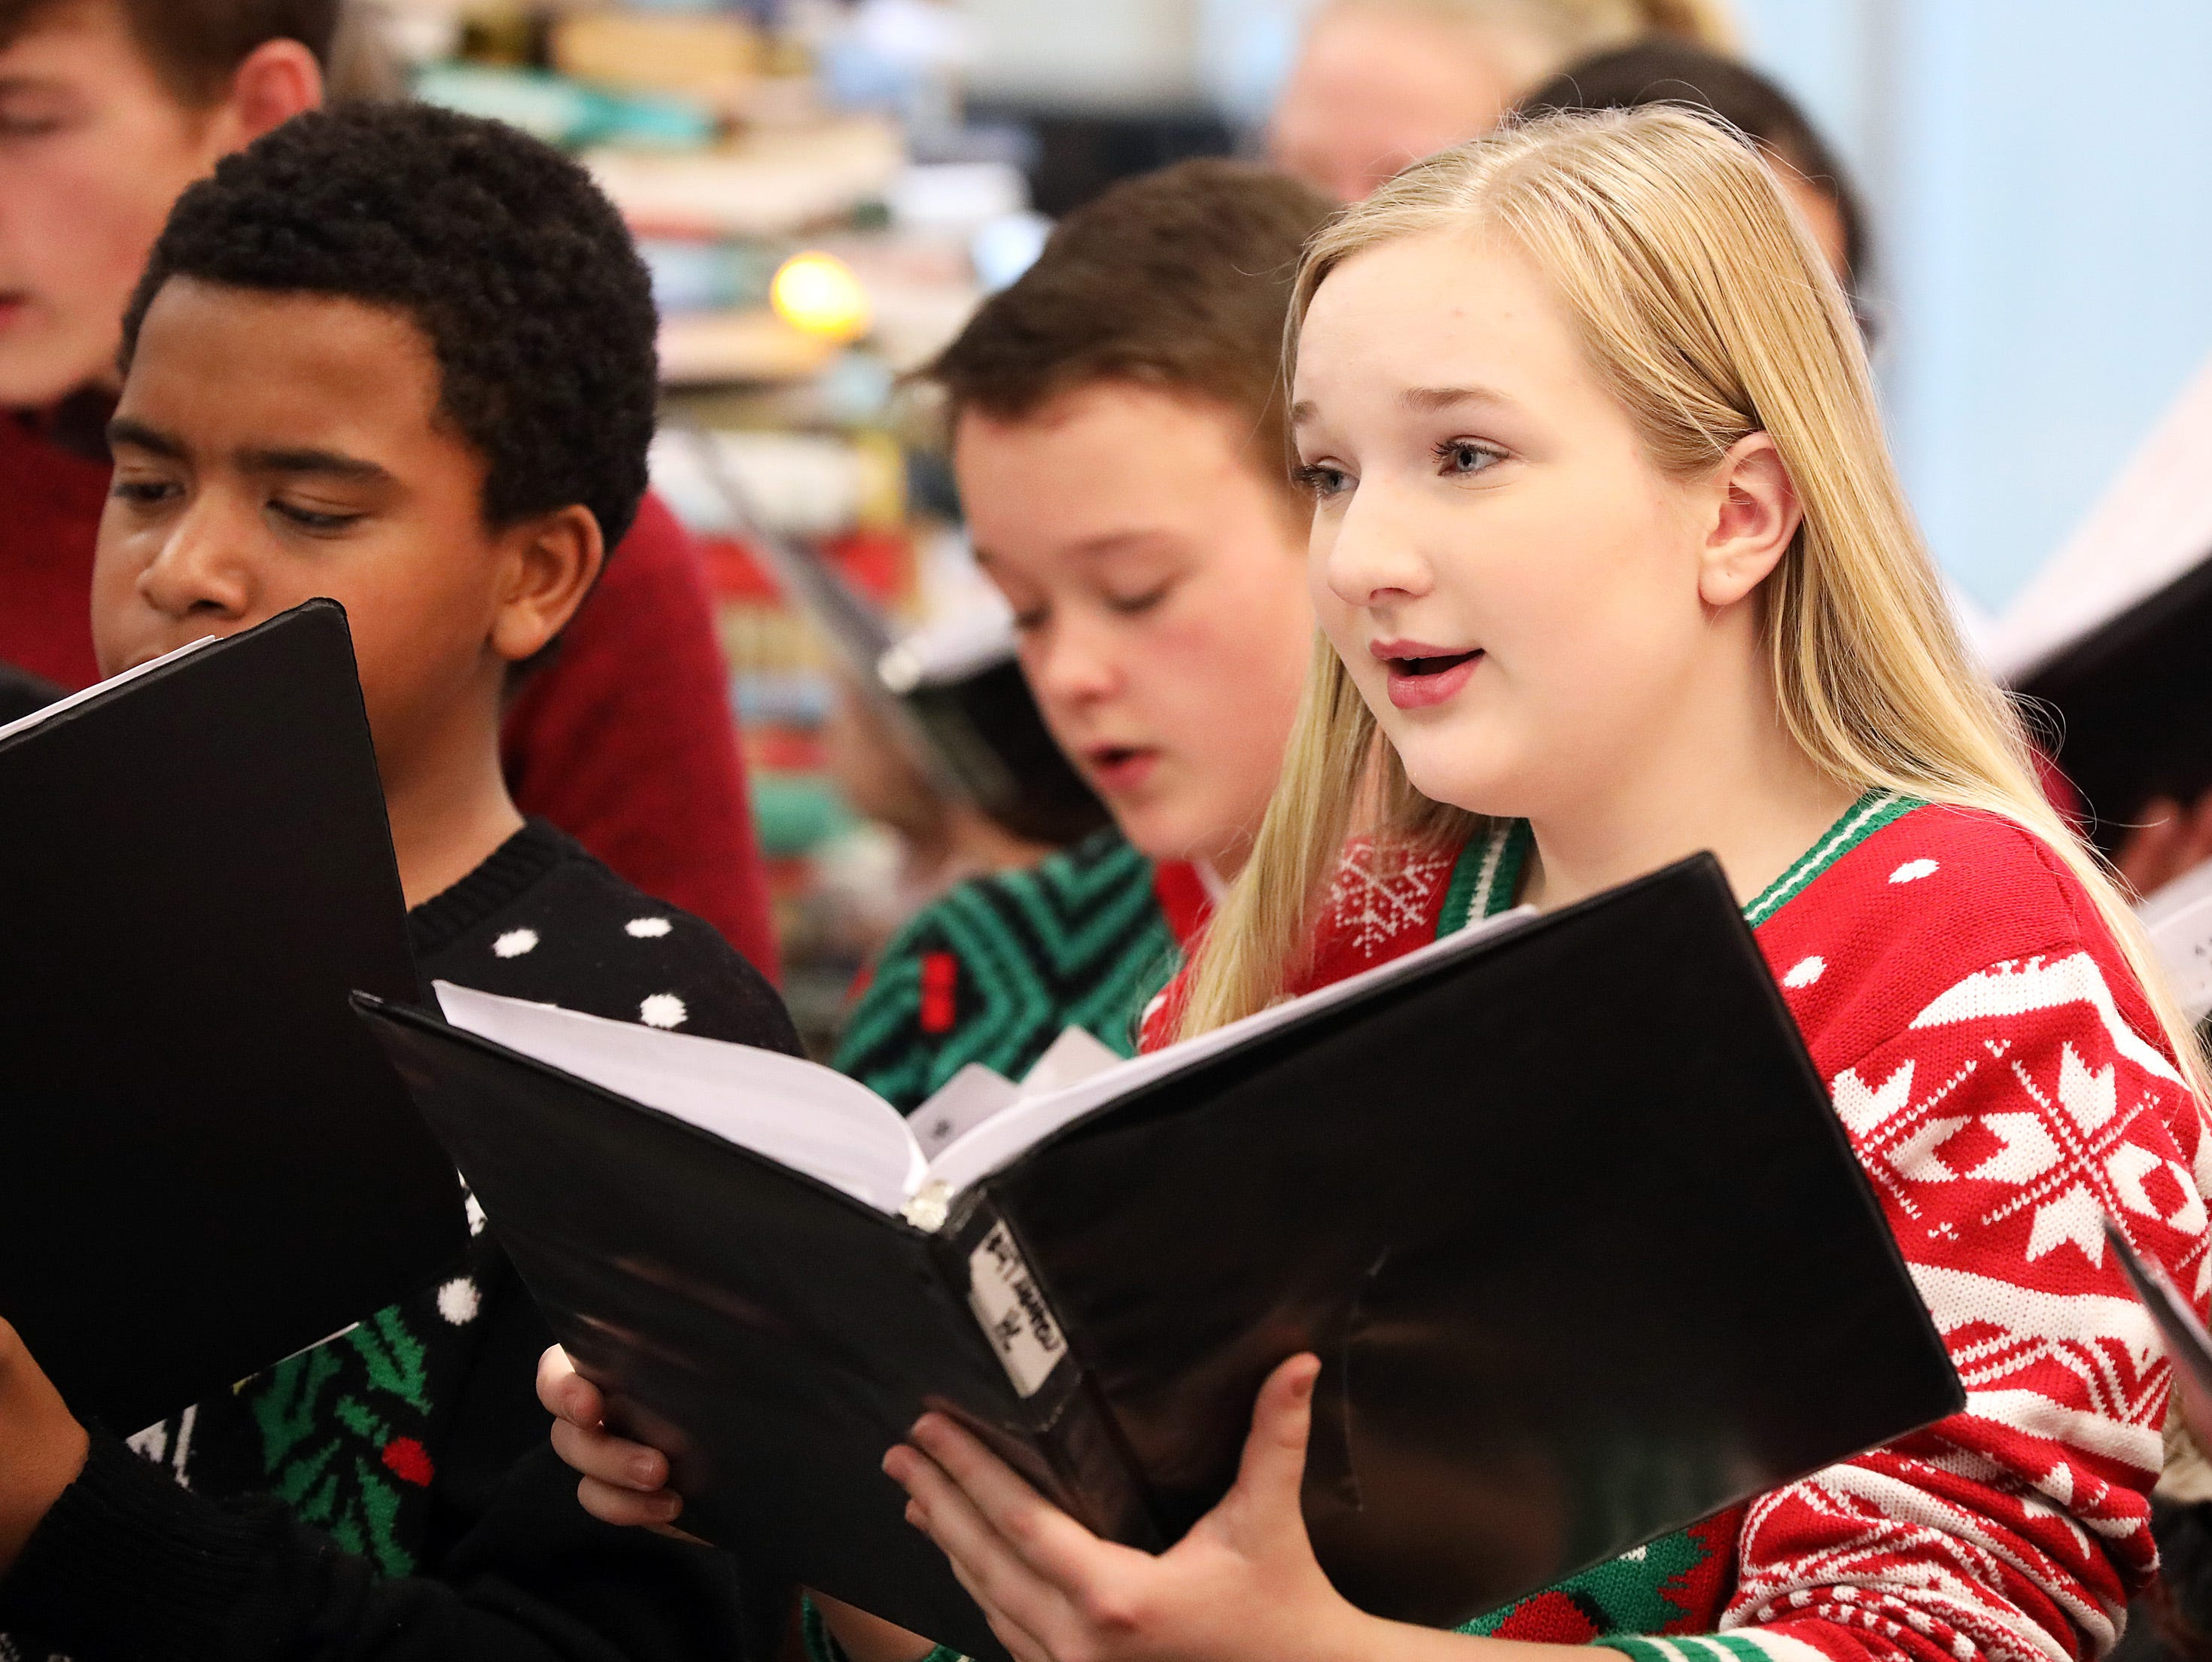 Paige Winkelman sings holiday music with the Johnston Middle School Ninth Grade Chamber Choir during Holidays in Johnston on Saturday, Dec. 1, 2018 at the Johnston Public Library featuring gingerbread house contest, cookie decorating, story and craft time and Santa.